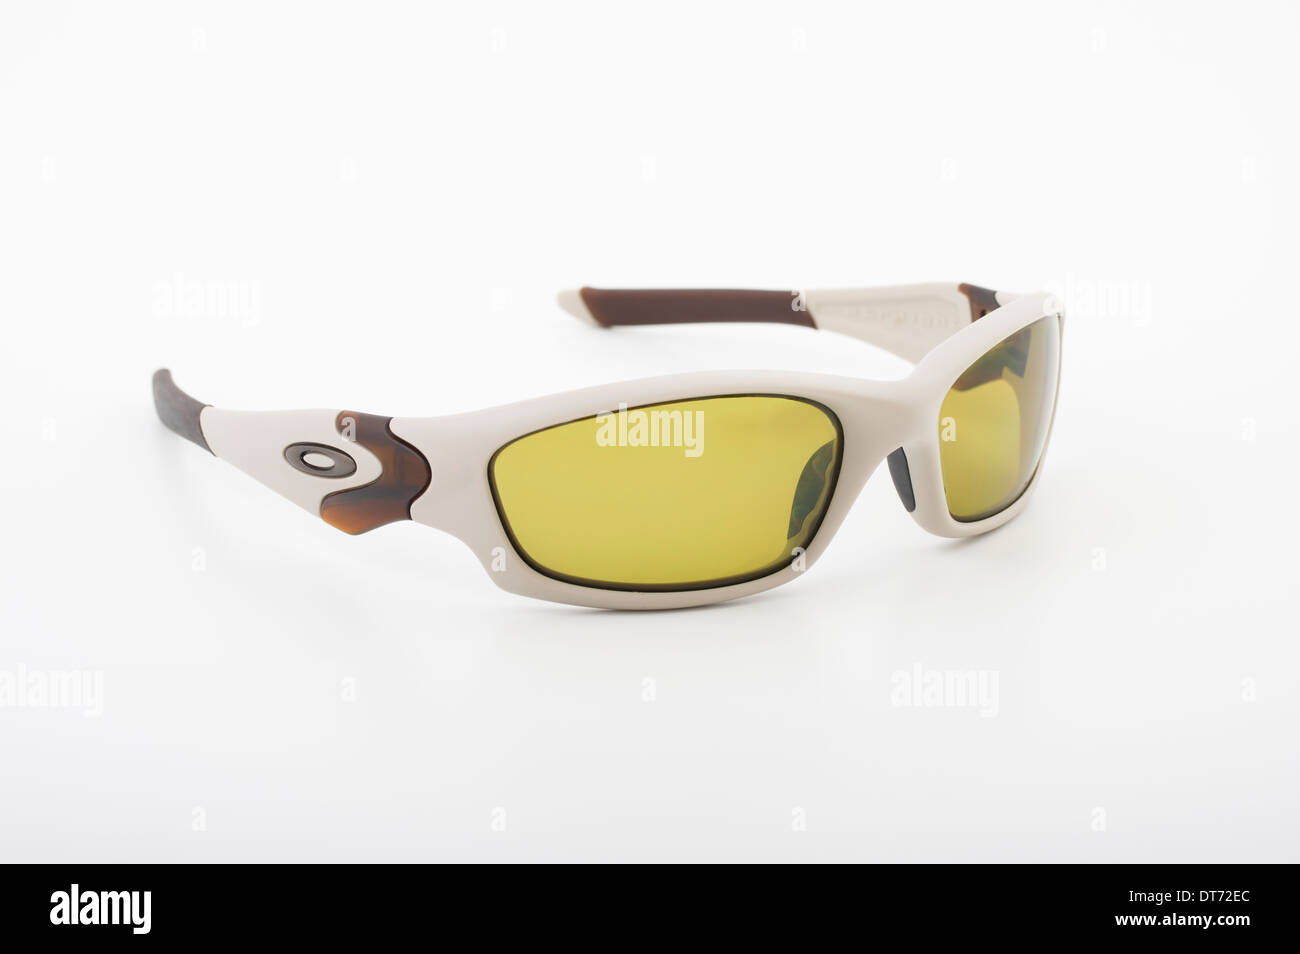 oakley glasses stock  oakley straight jacket sunglasses with yellow polarized lenses stock image